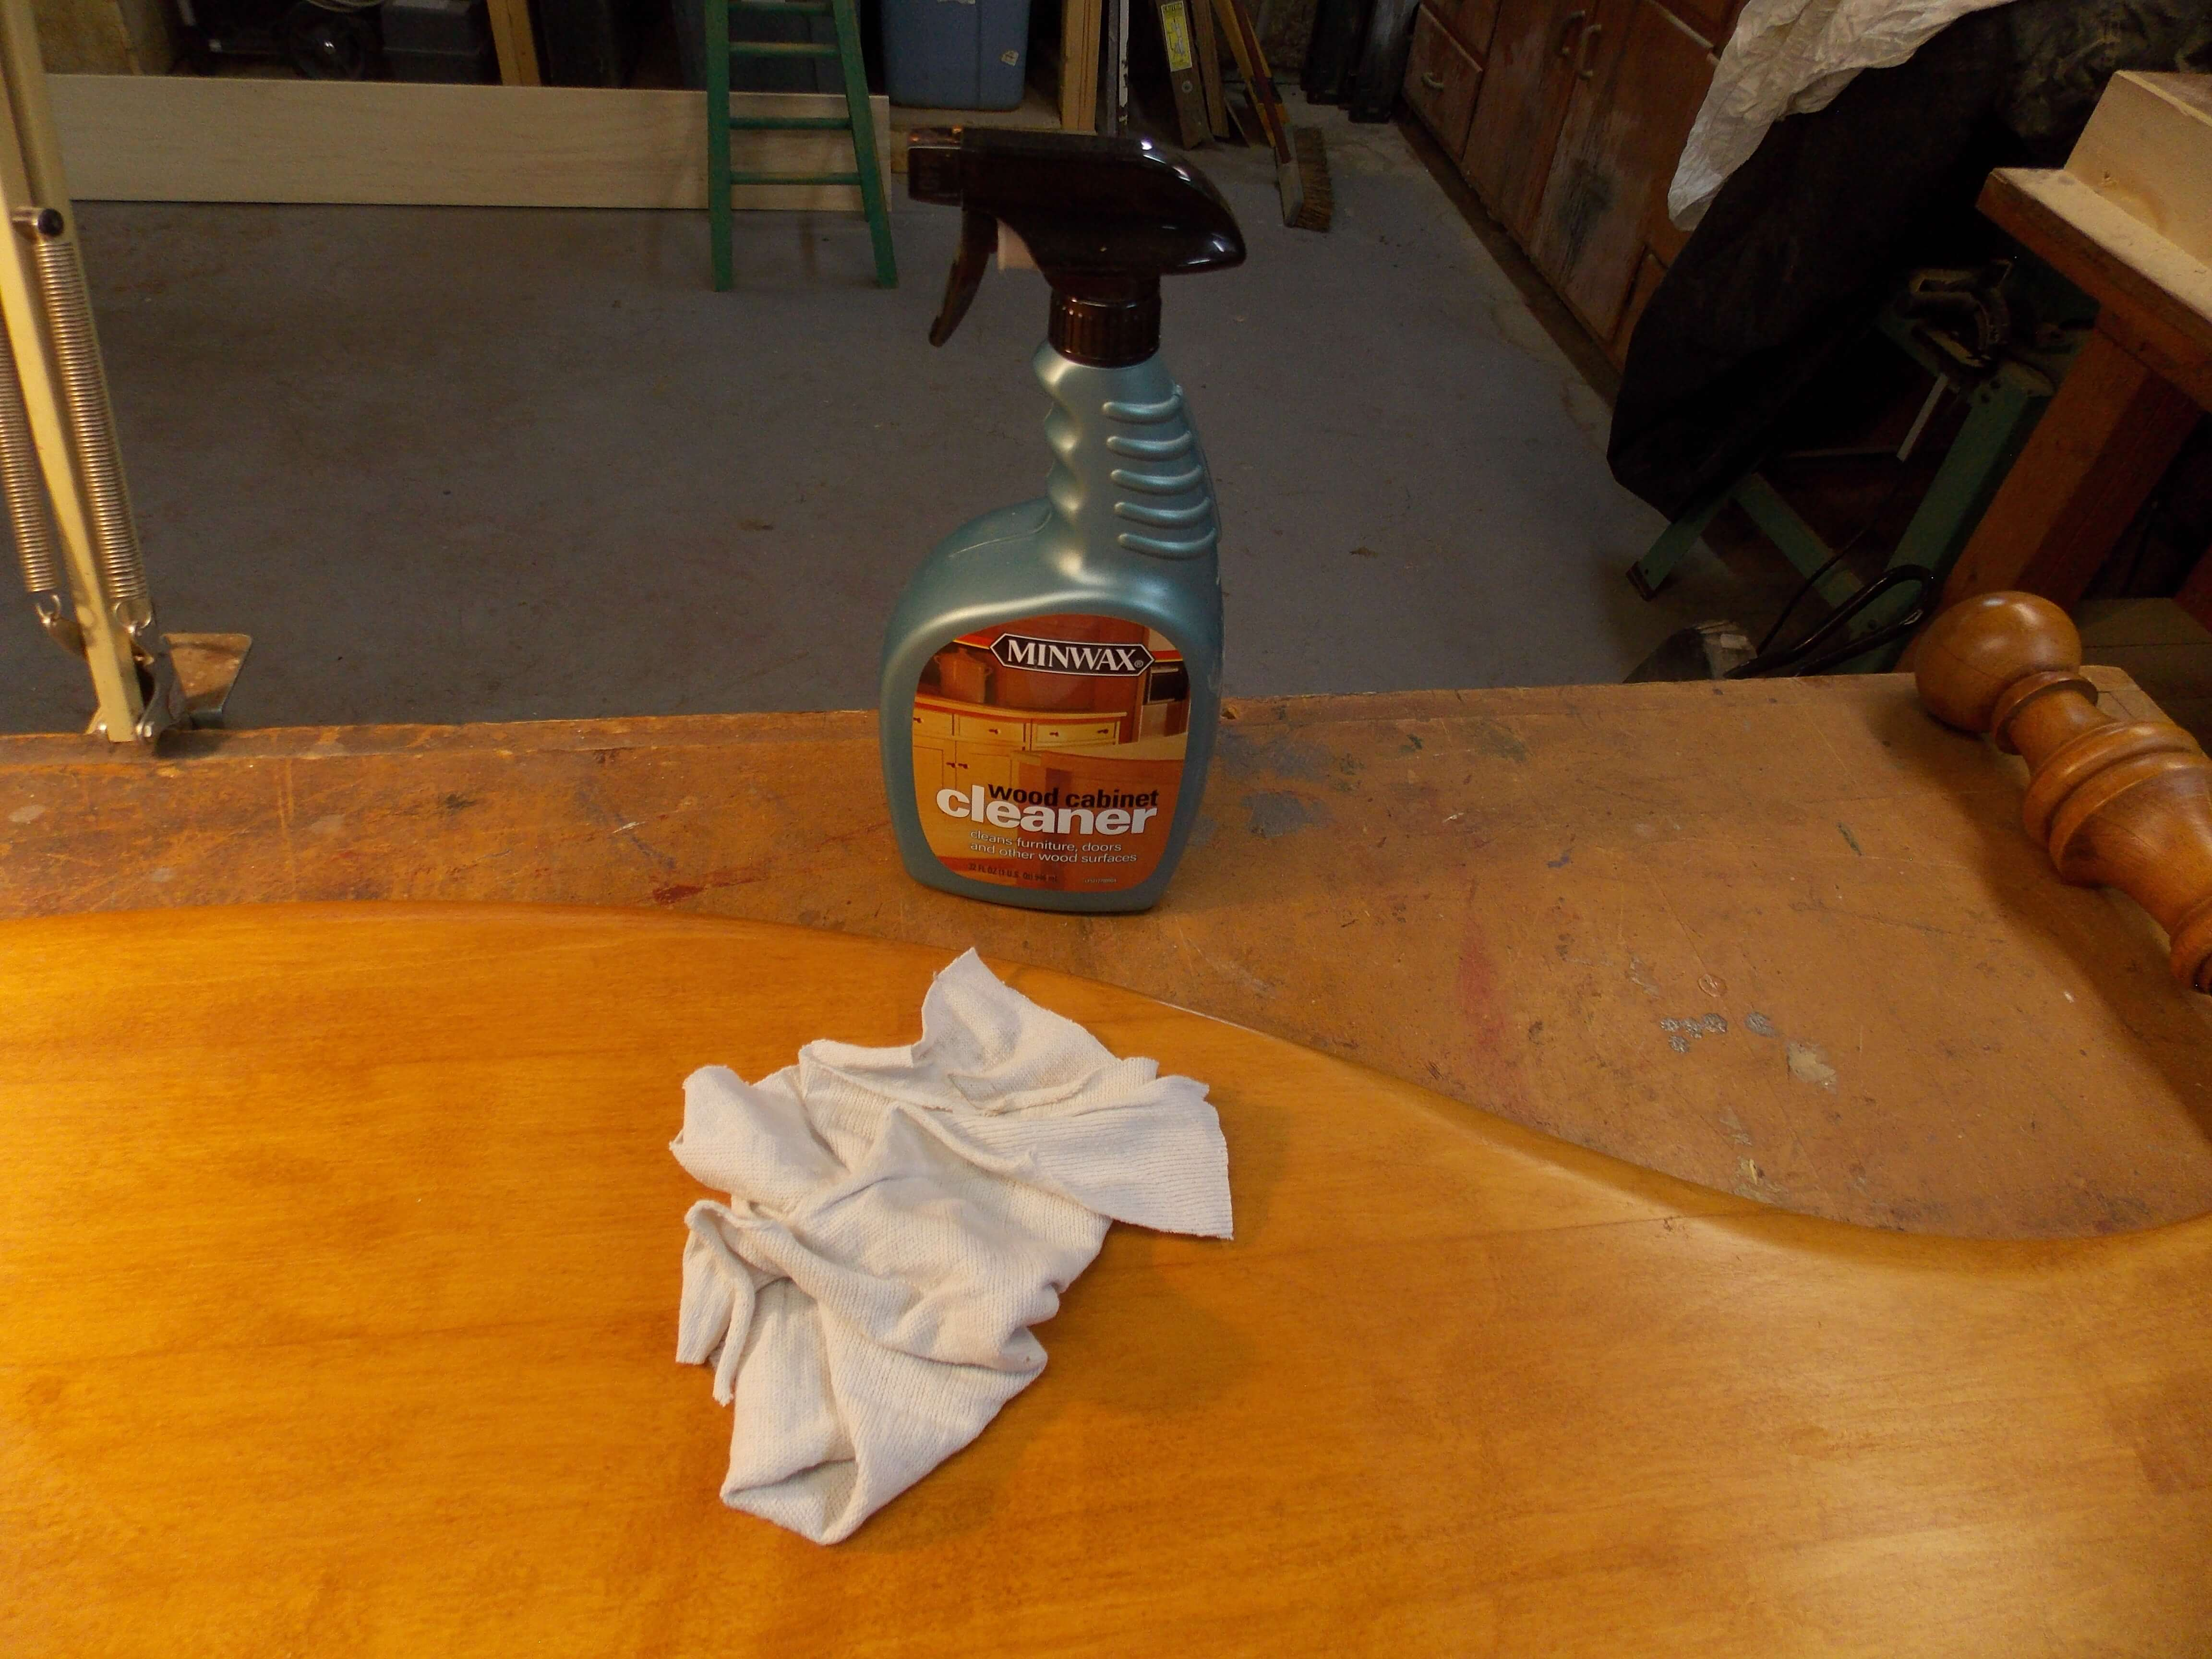 Using Minwax Wood Cabinet Cleaner removes old dirt and grime